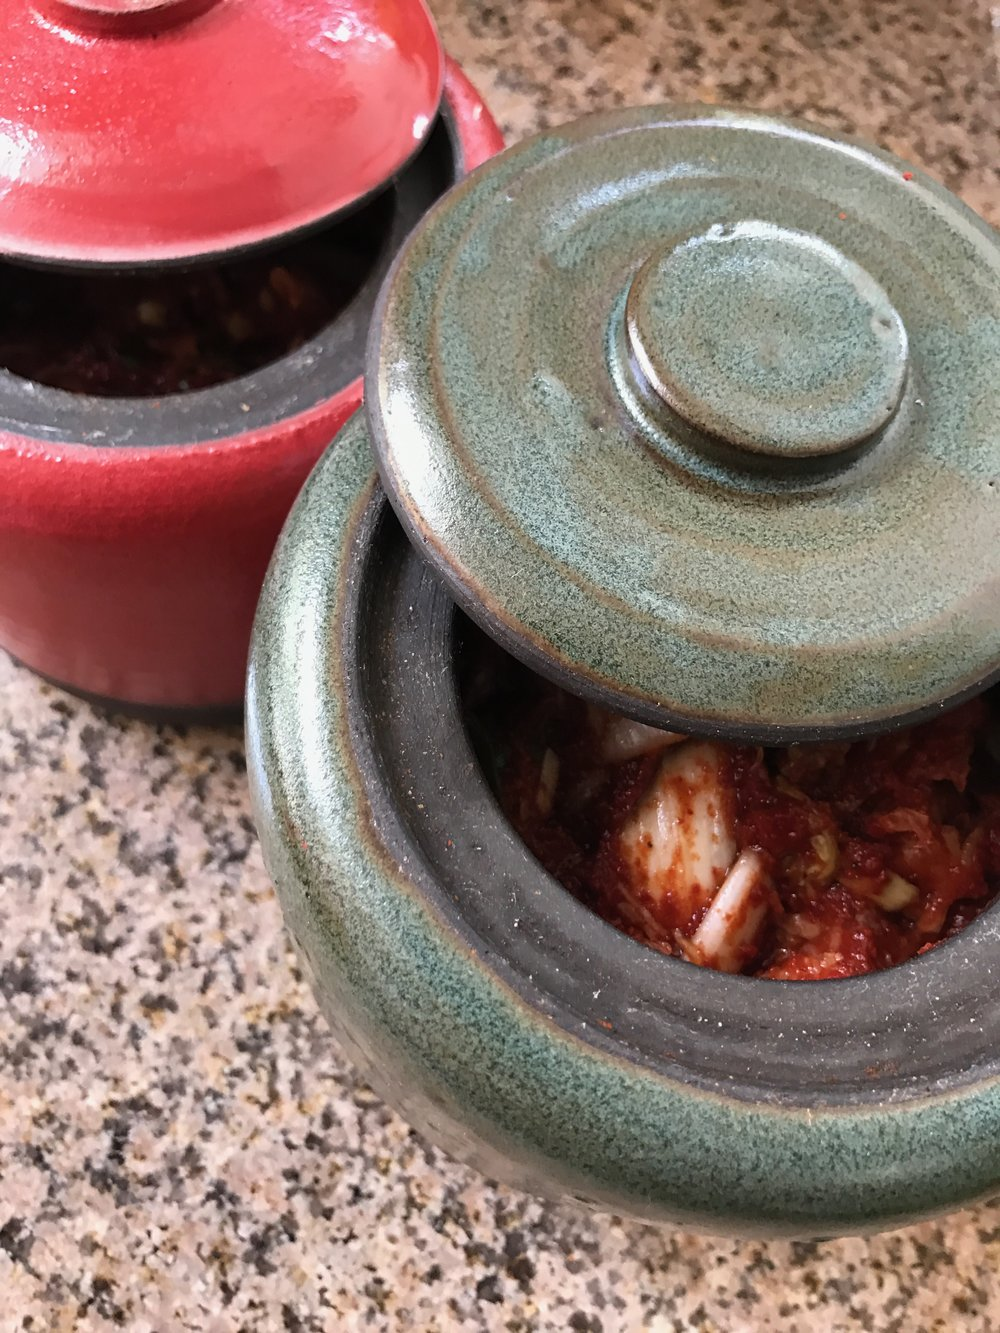 Kimchee in Onggi made by Robert Siegel